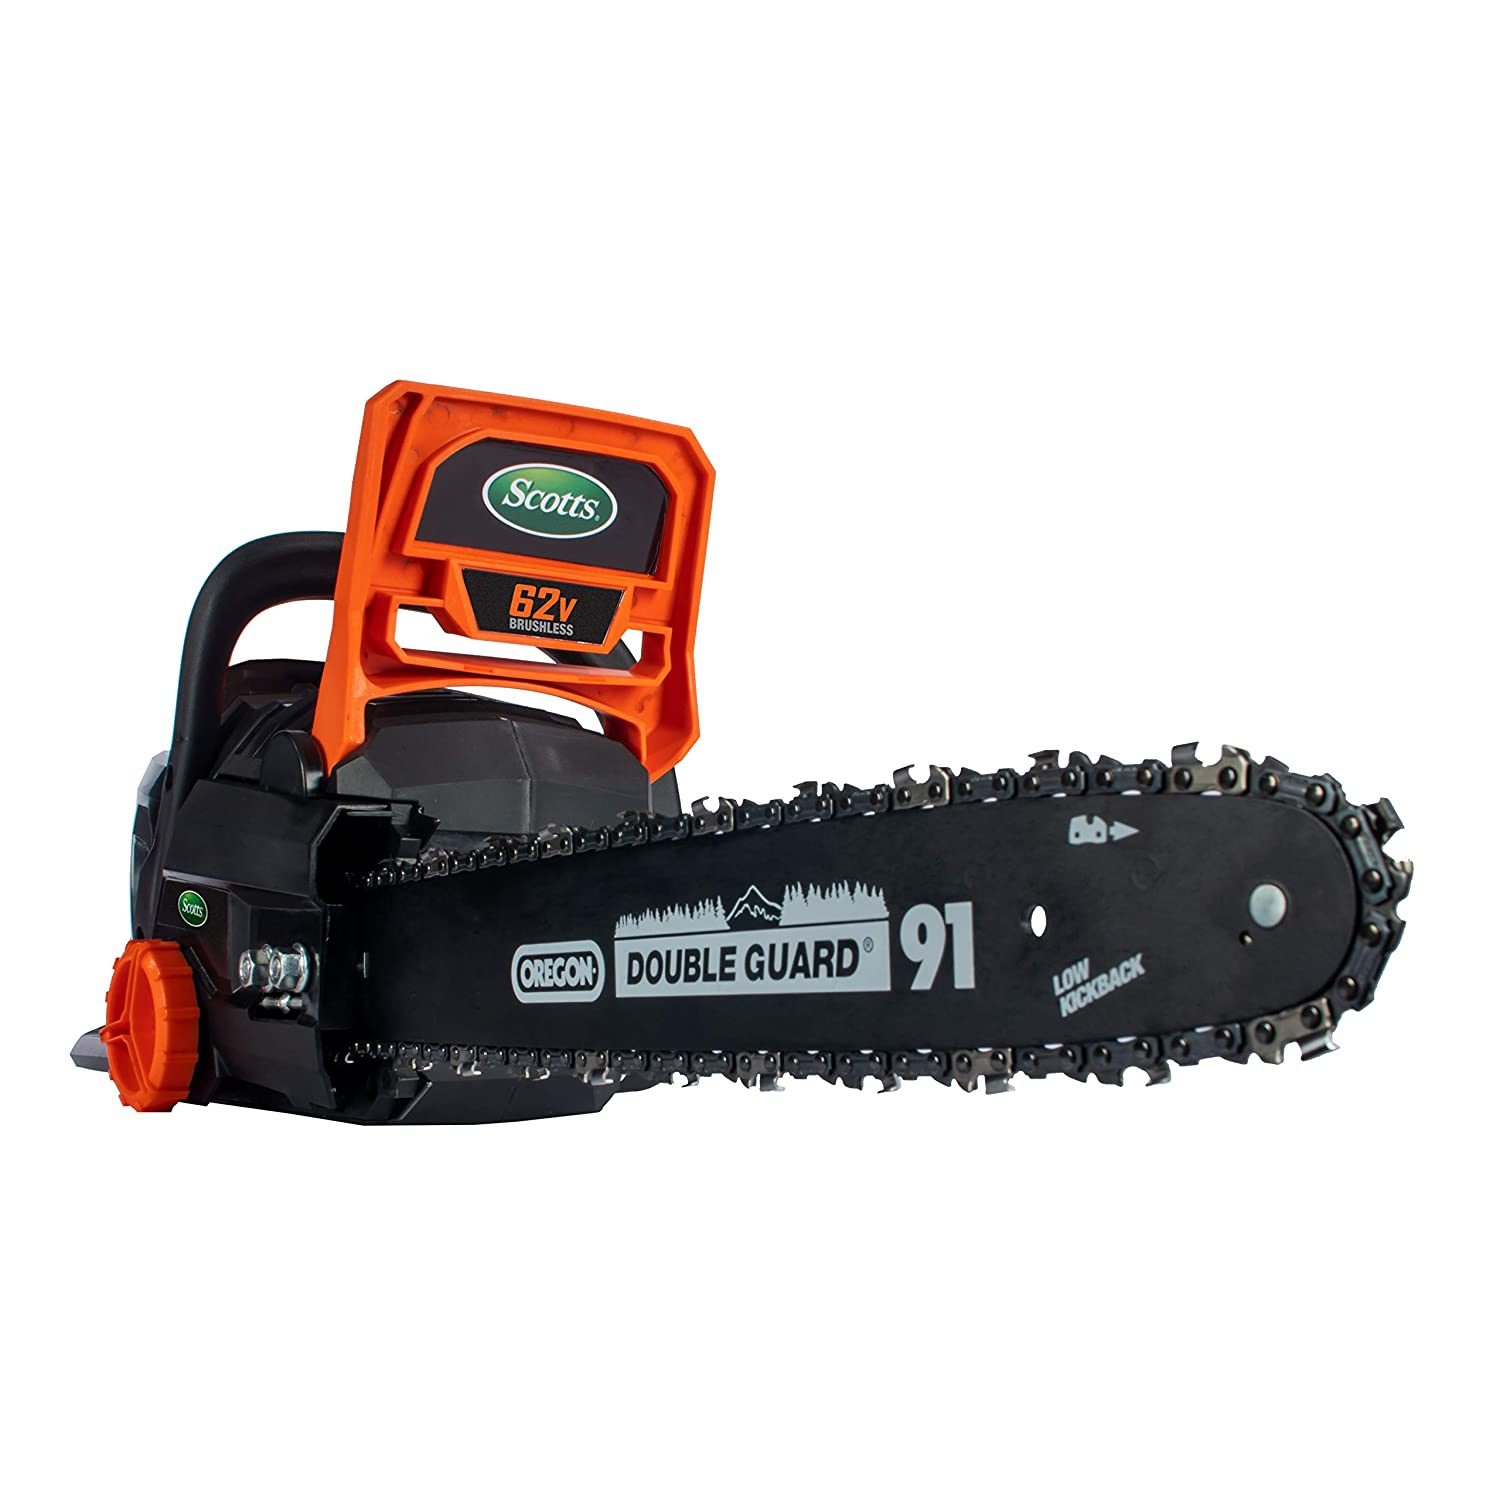 Scotts Outdoor Power Tools LCS31662S Chainsaws product image 4